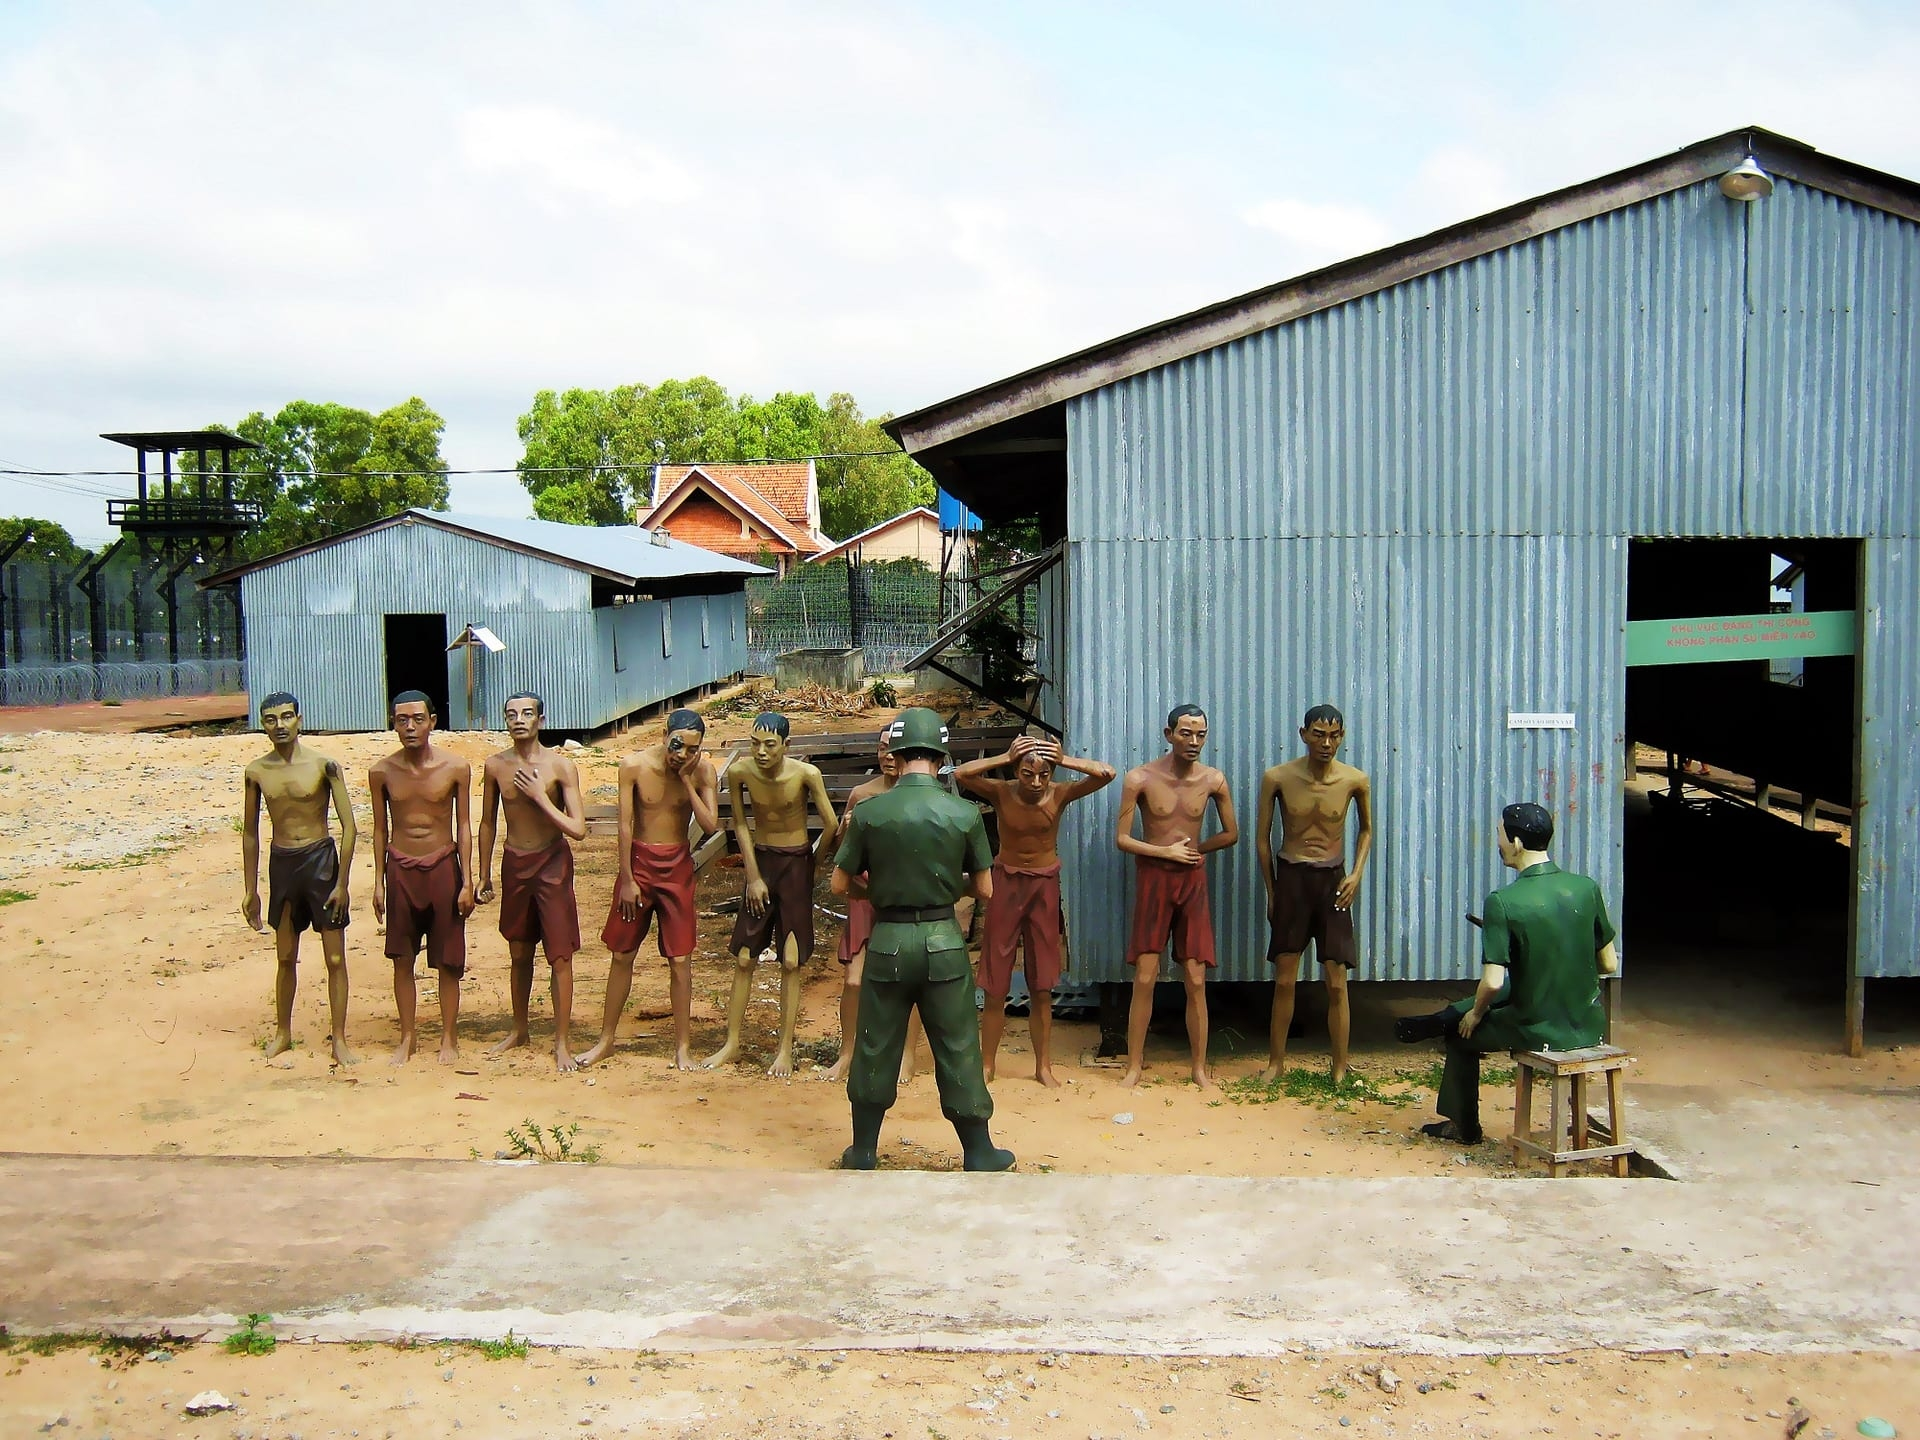 Two famous prisons in Southern Vietnam